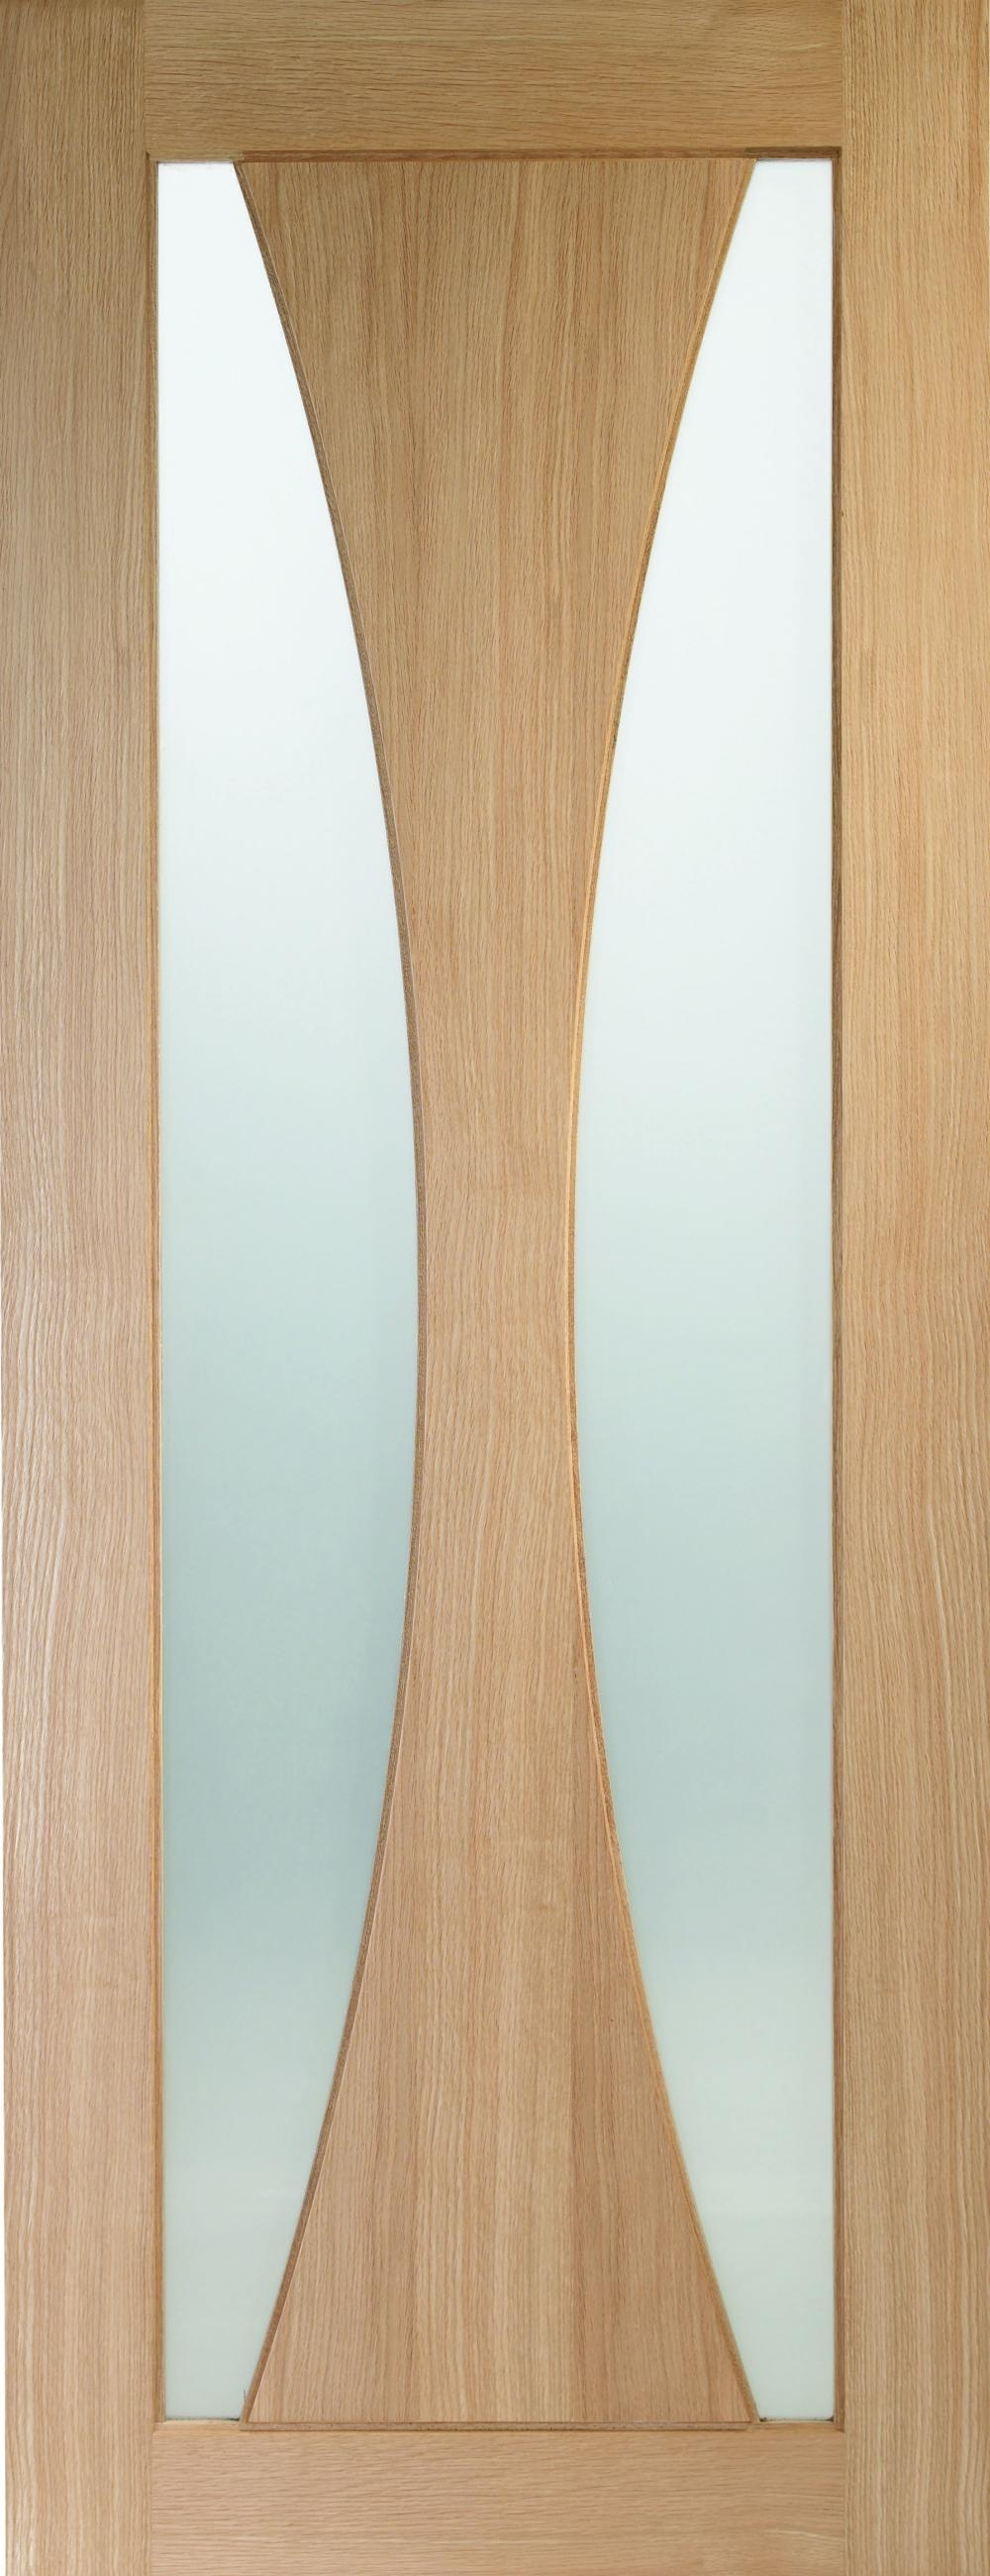 Verona Oak - Clear Glass Fire Door:  Image